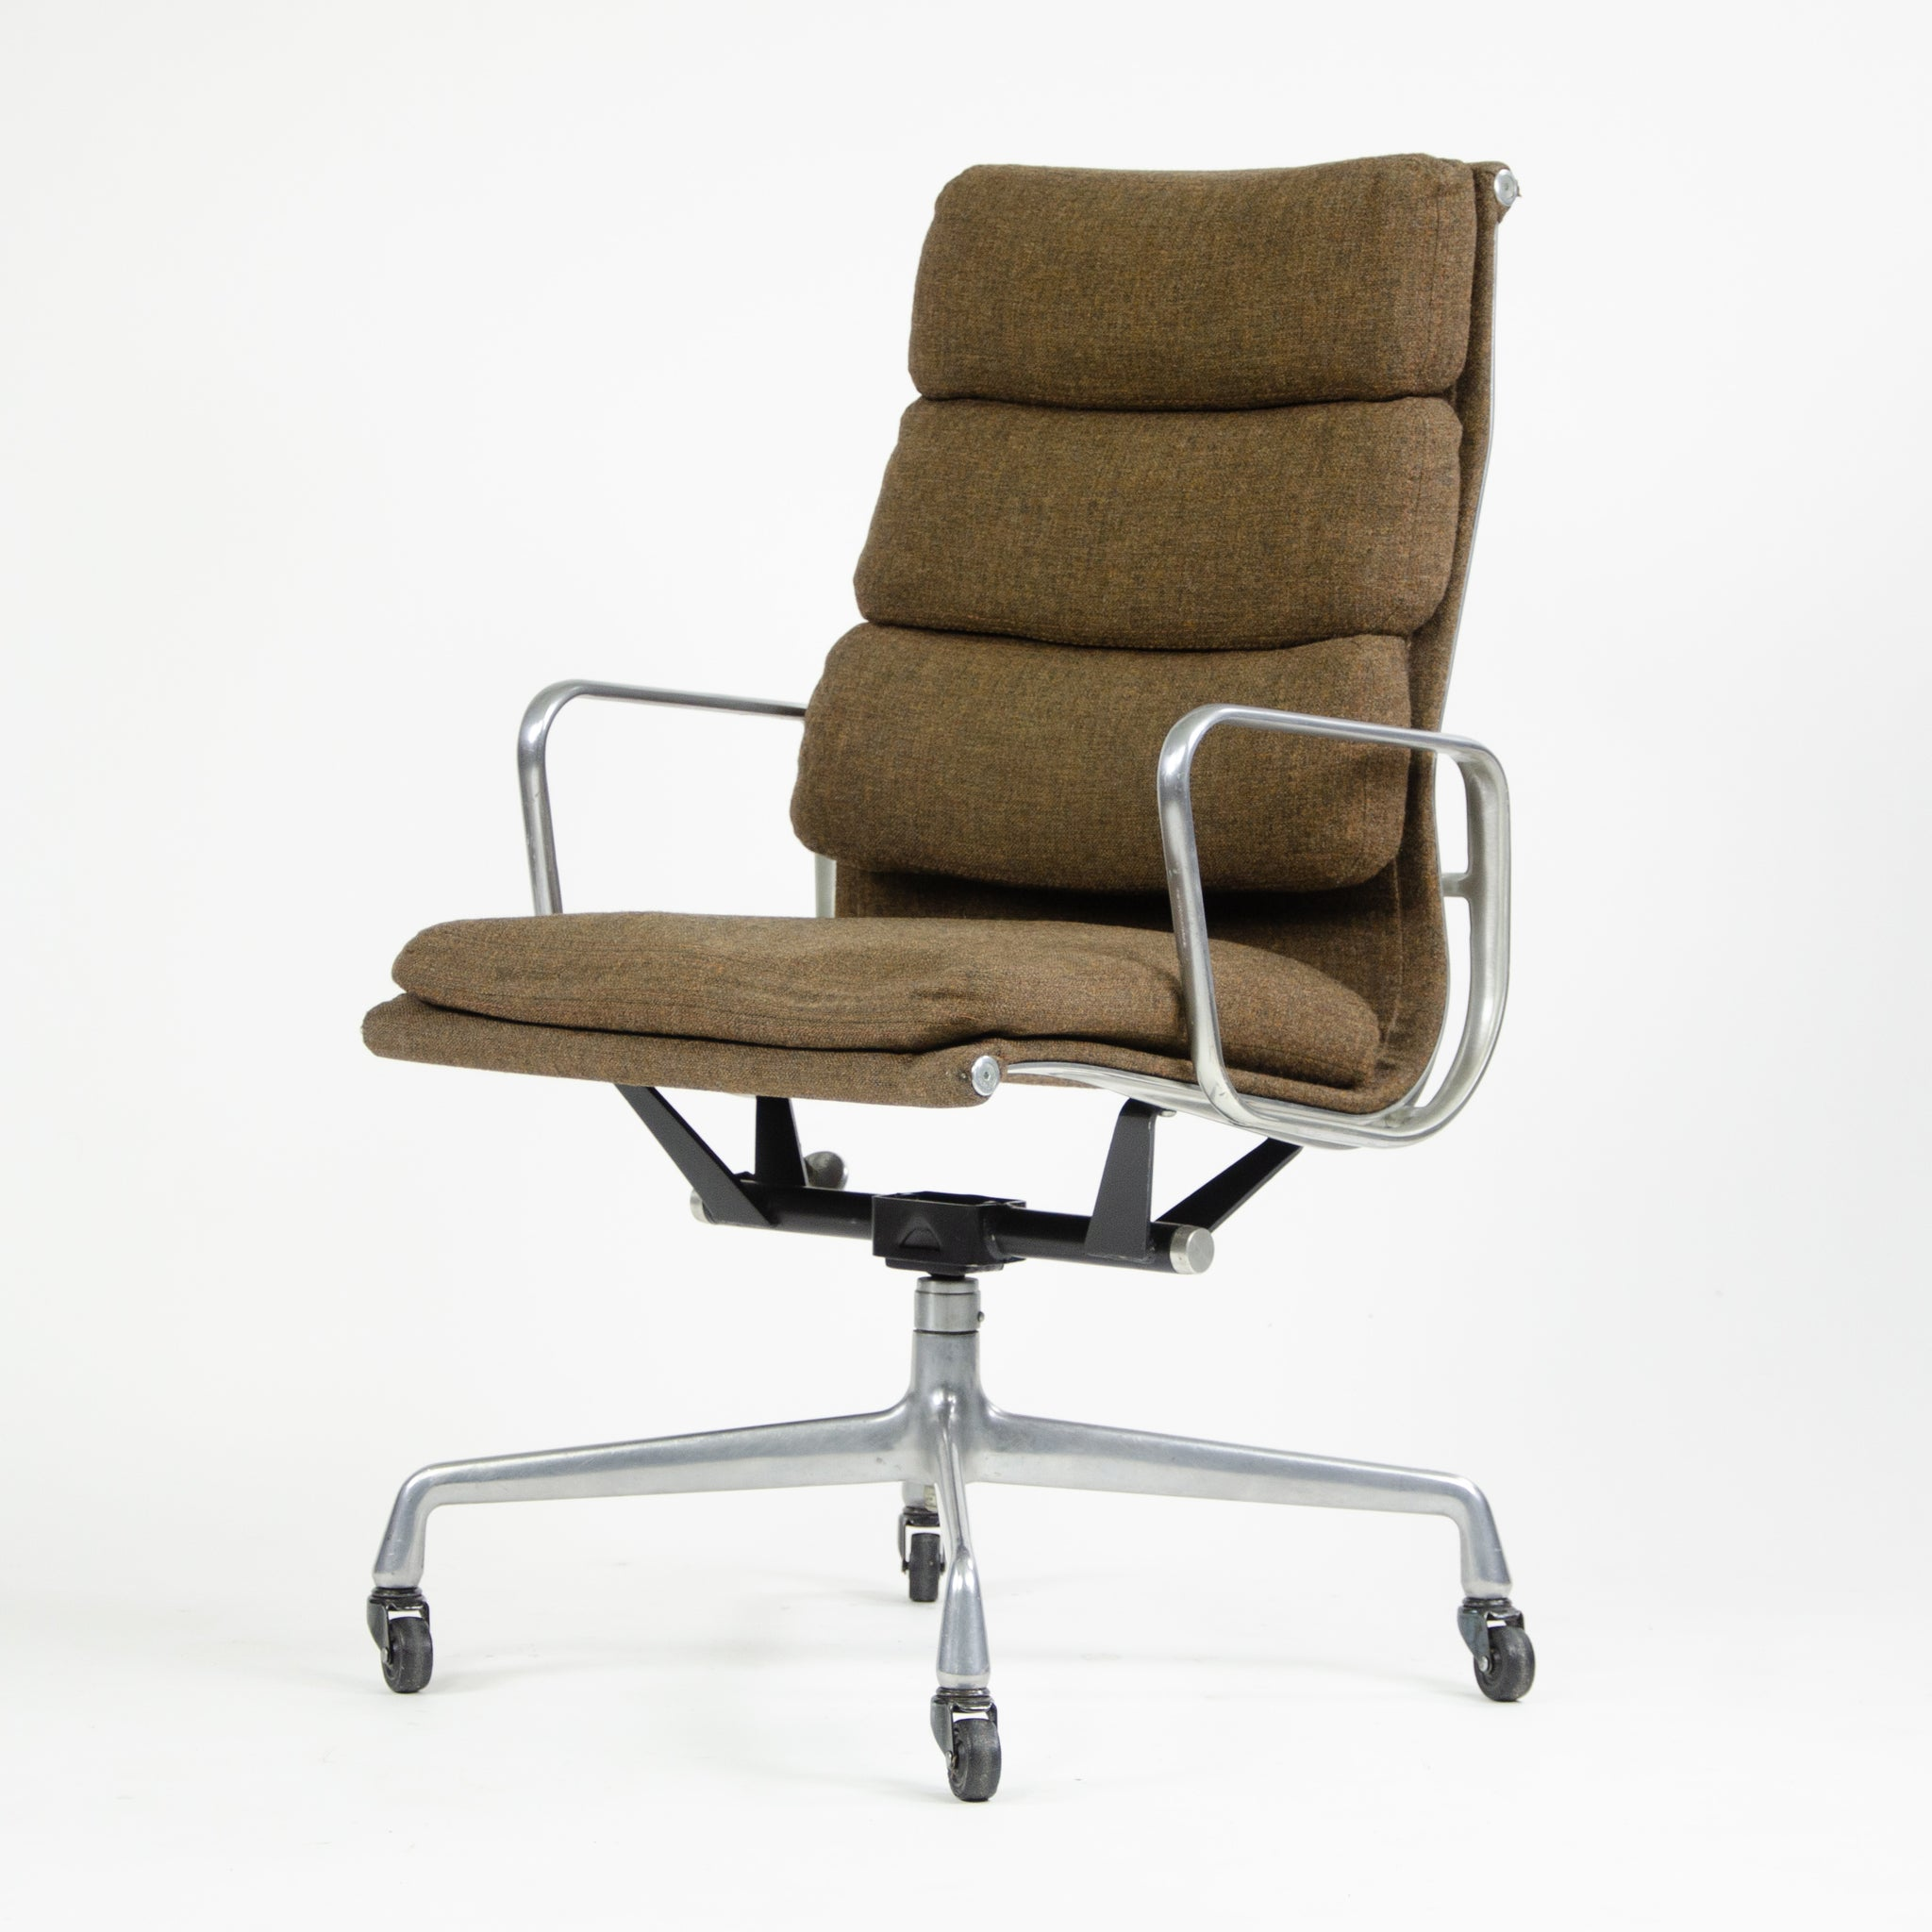 SOLD Herman Miller Eames Vintage Fabric High Back Soft Pad Aluminum Chair 1980's